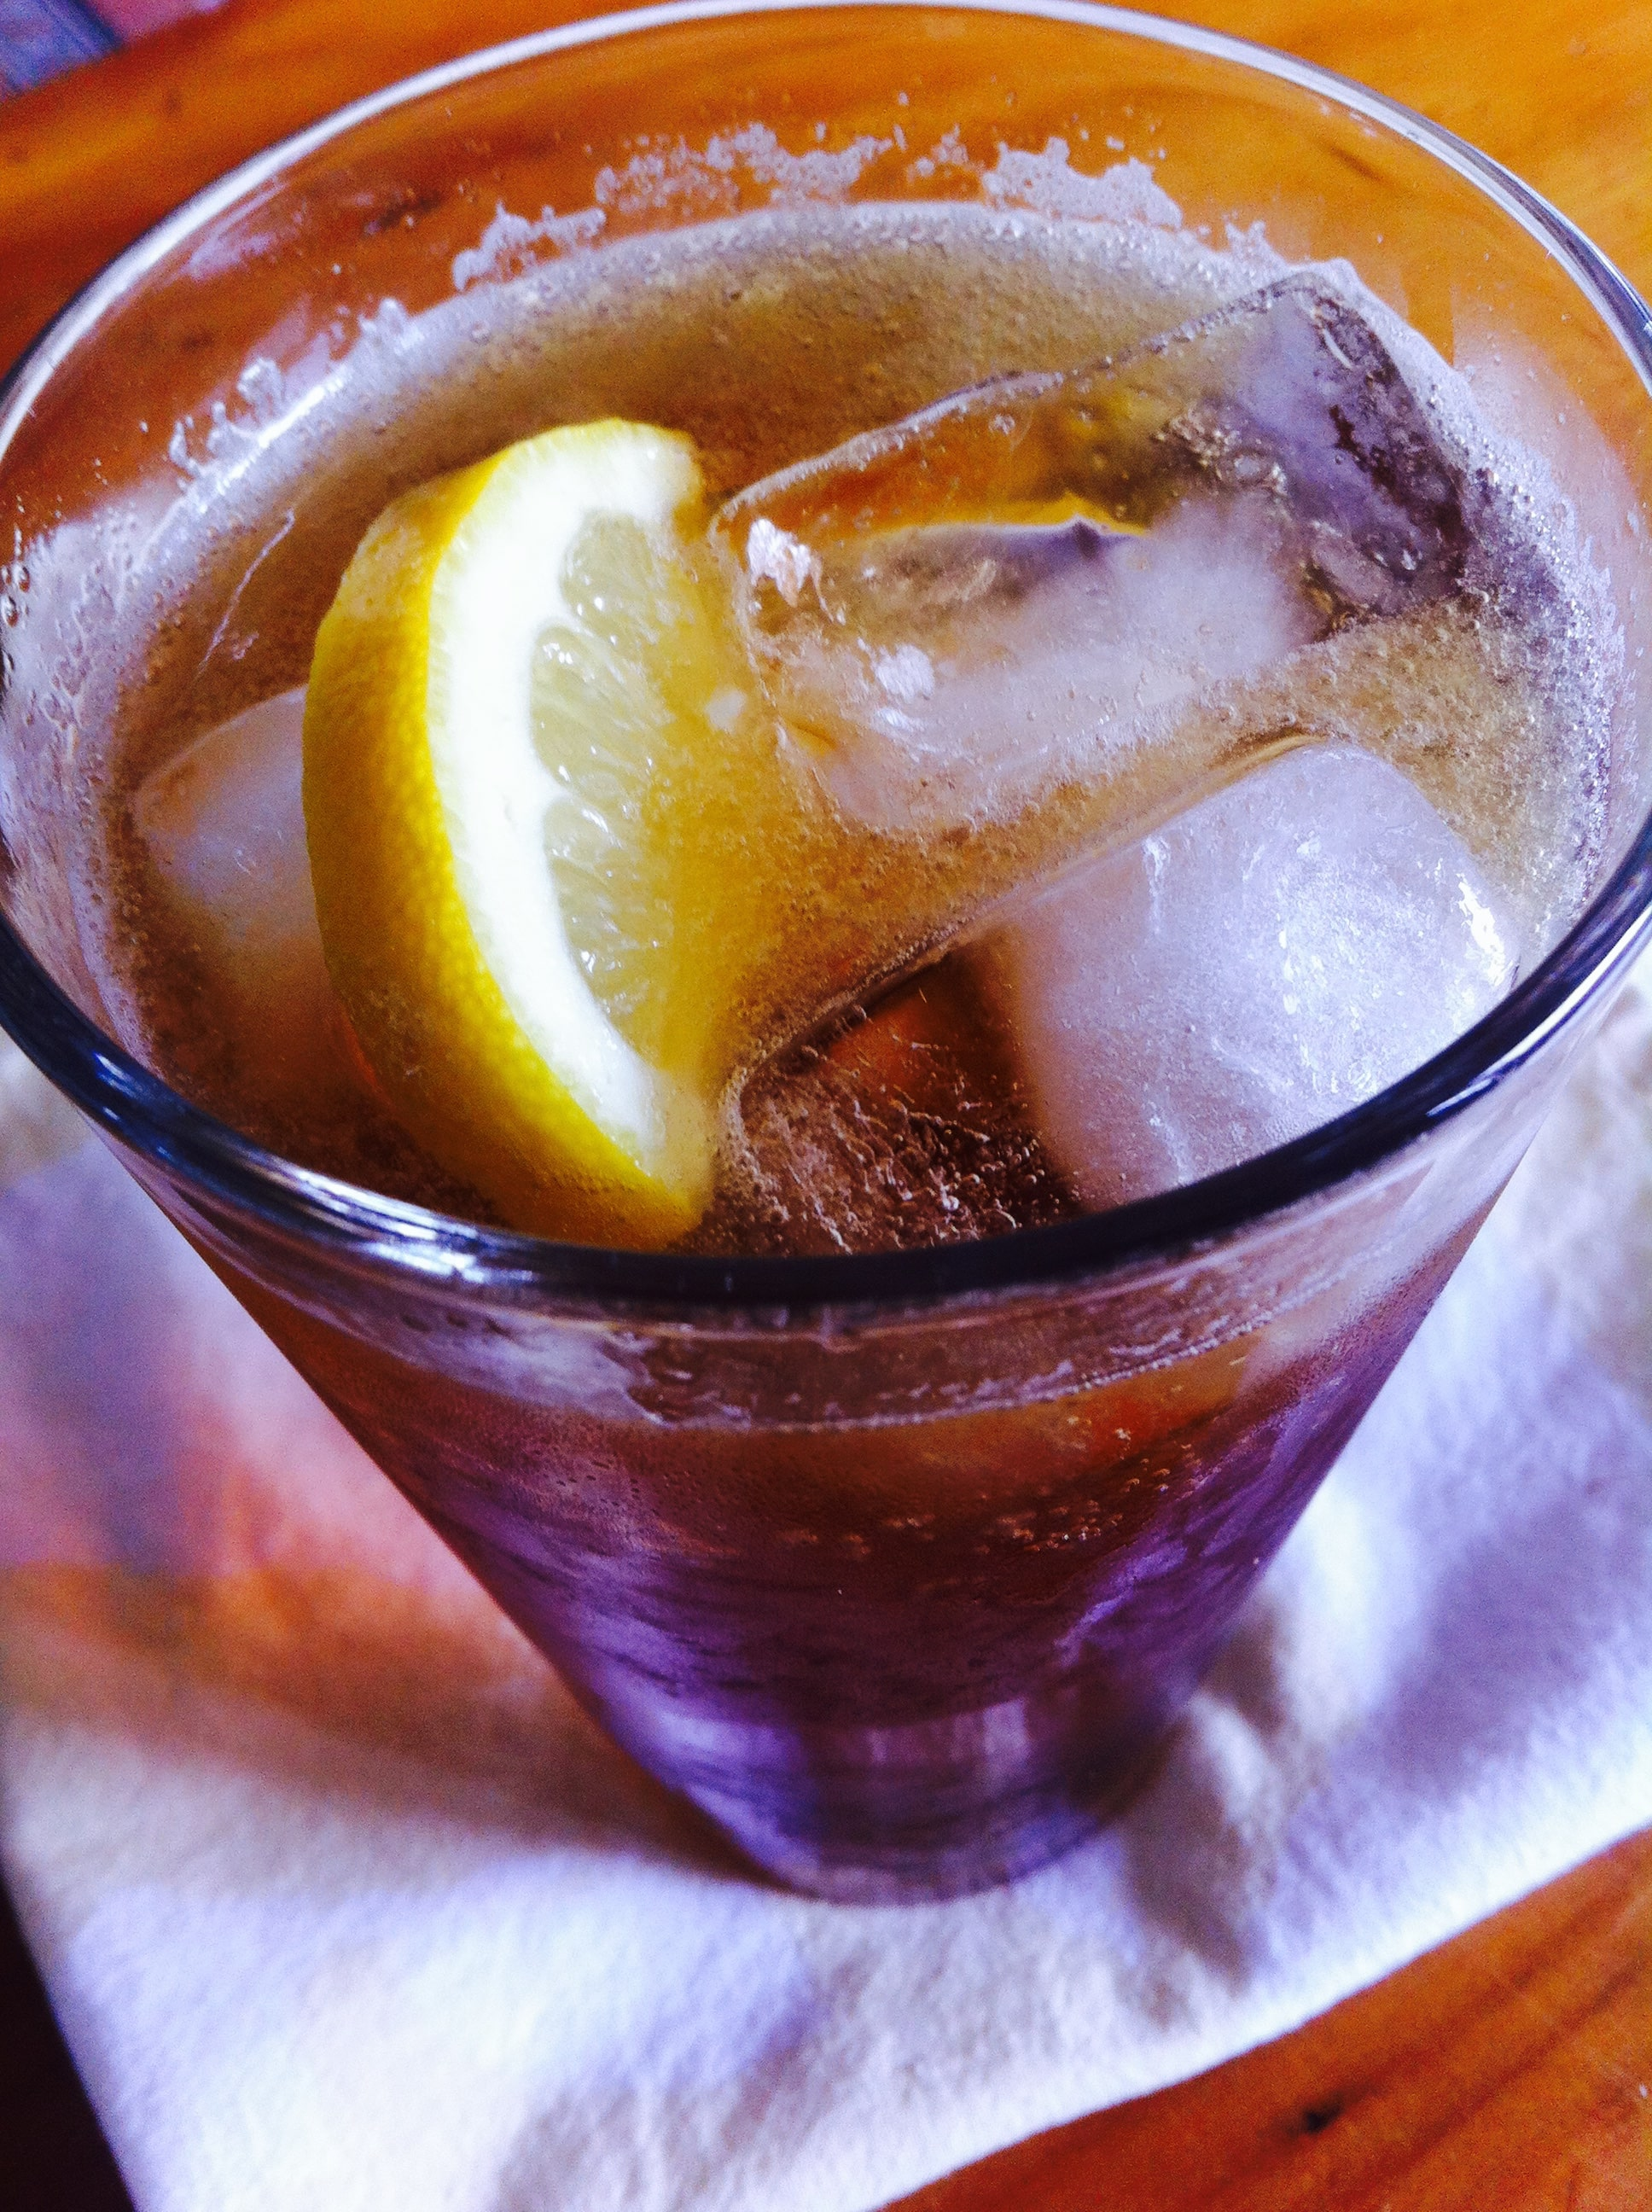 Virgin Long Island Iced Tea